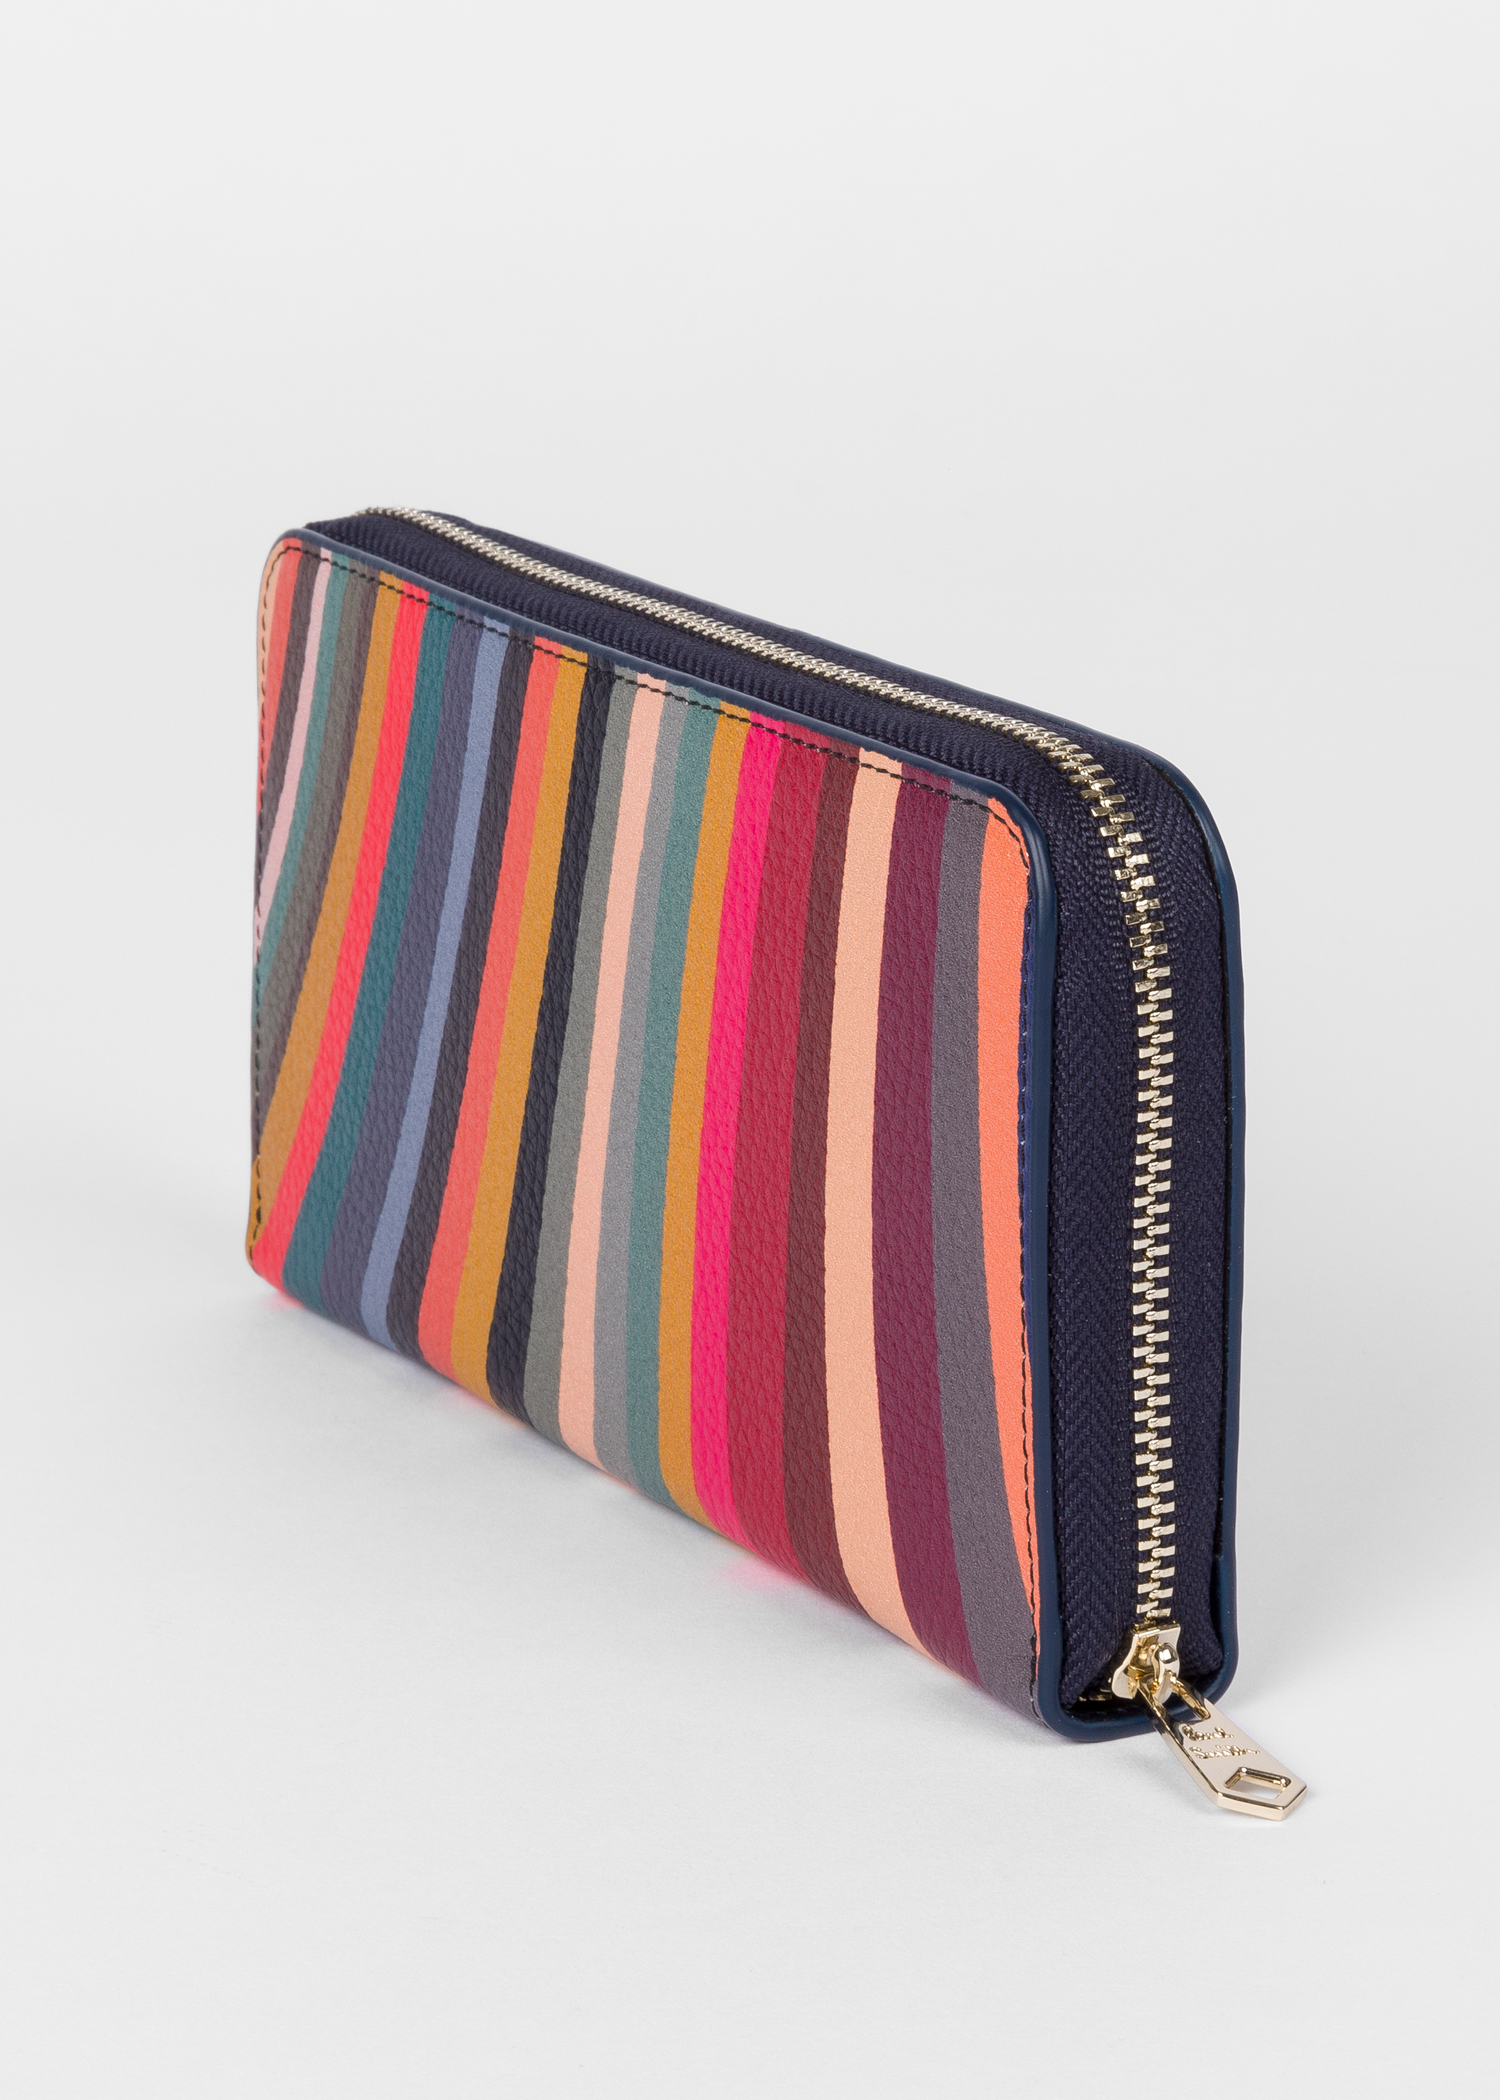 c3bb655d89ad Women's Large 'Swirl' Print Leather Zip-Around Wallet - Paul Smith US